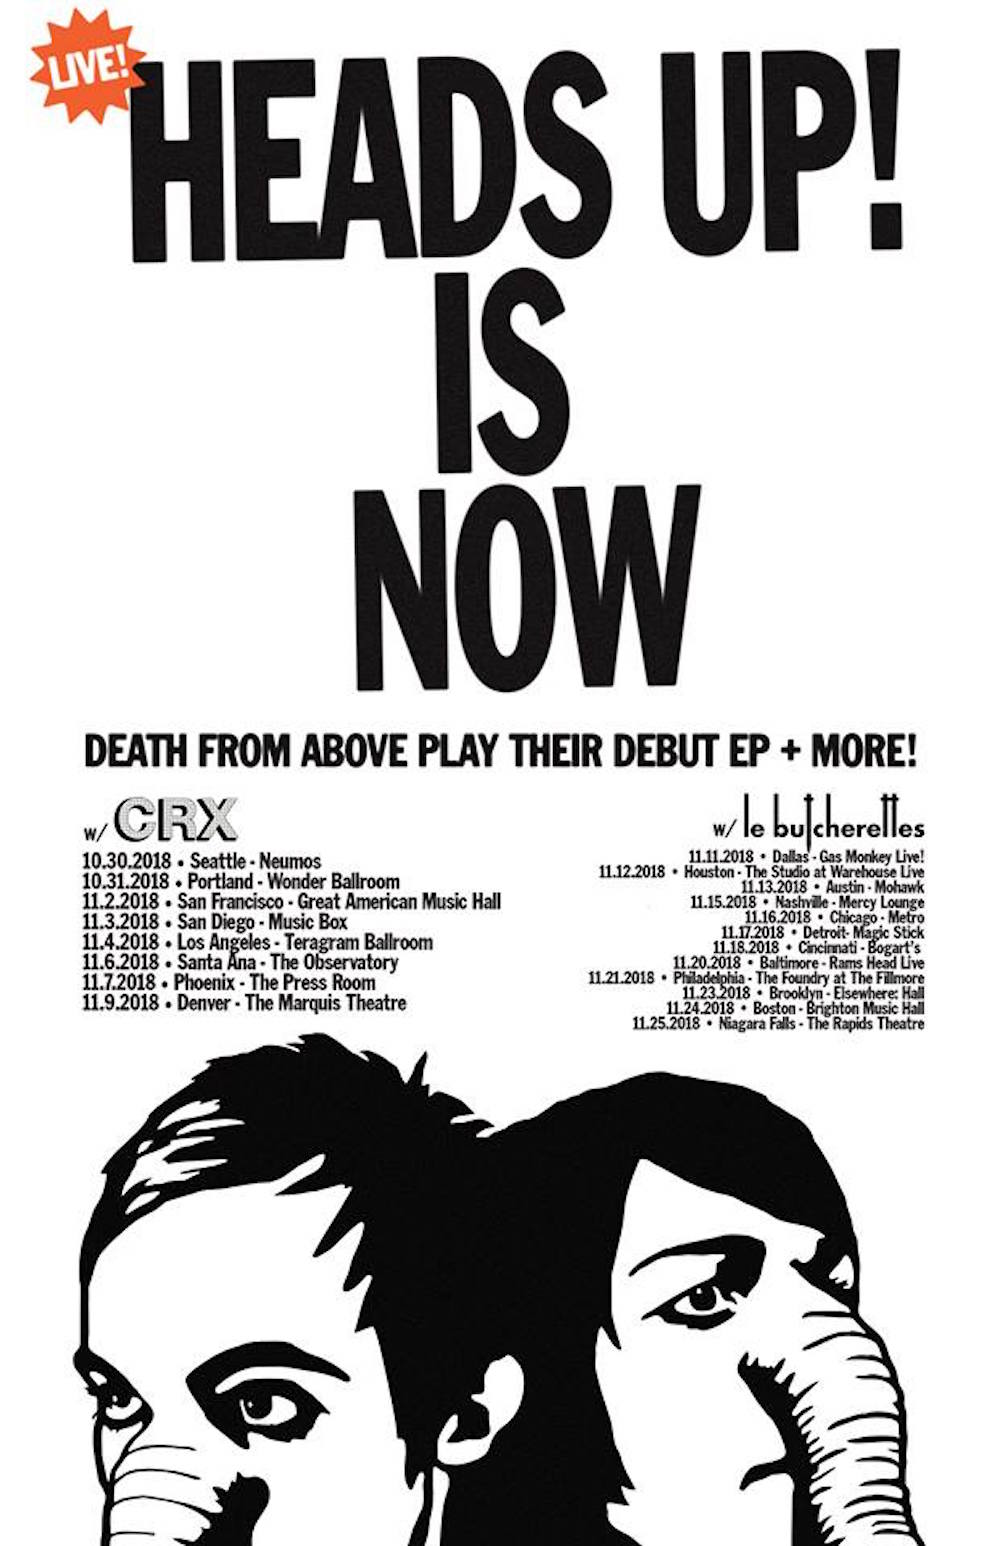 dfa 2018 tour dates Death From Above announce Heads Up US tour